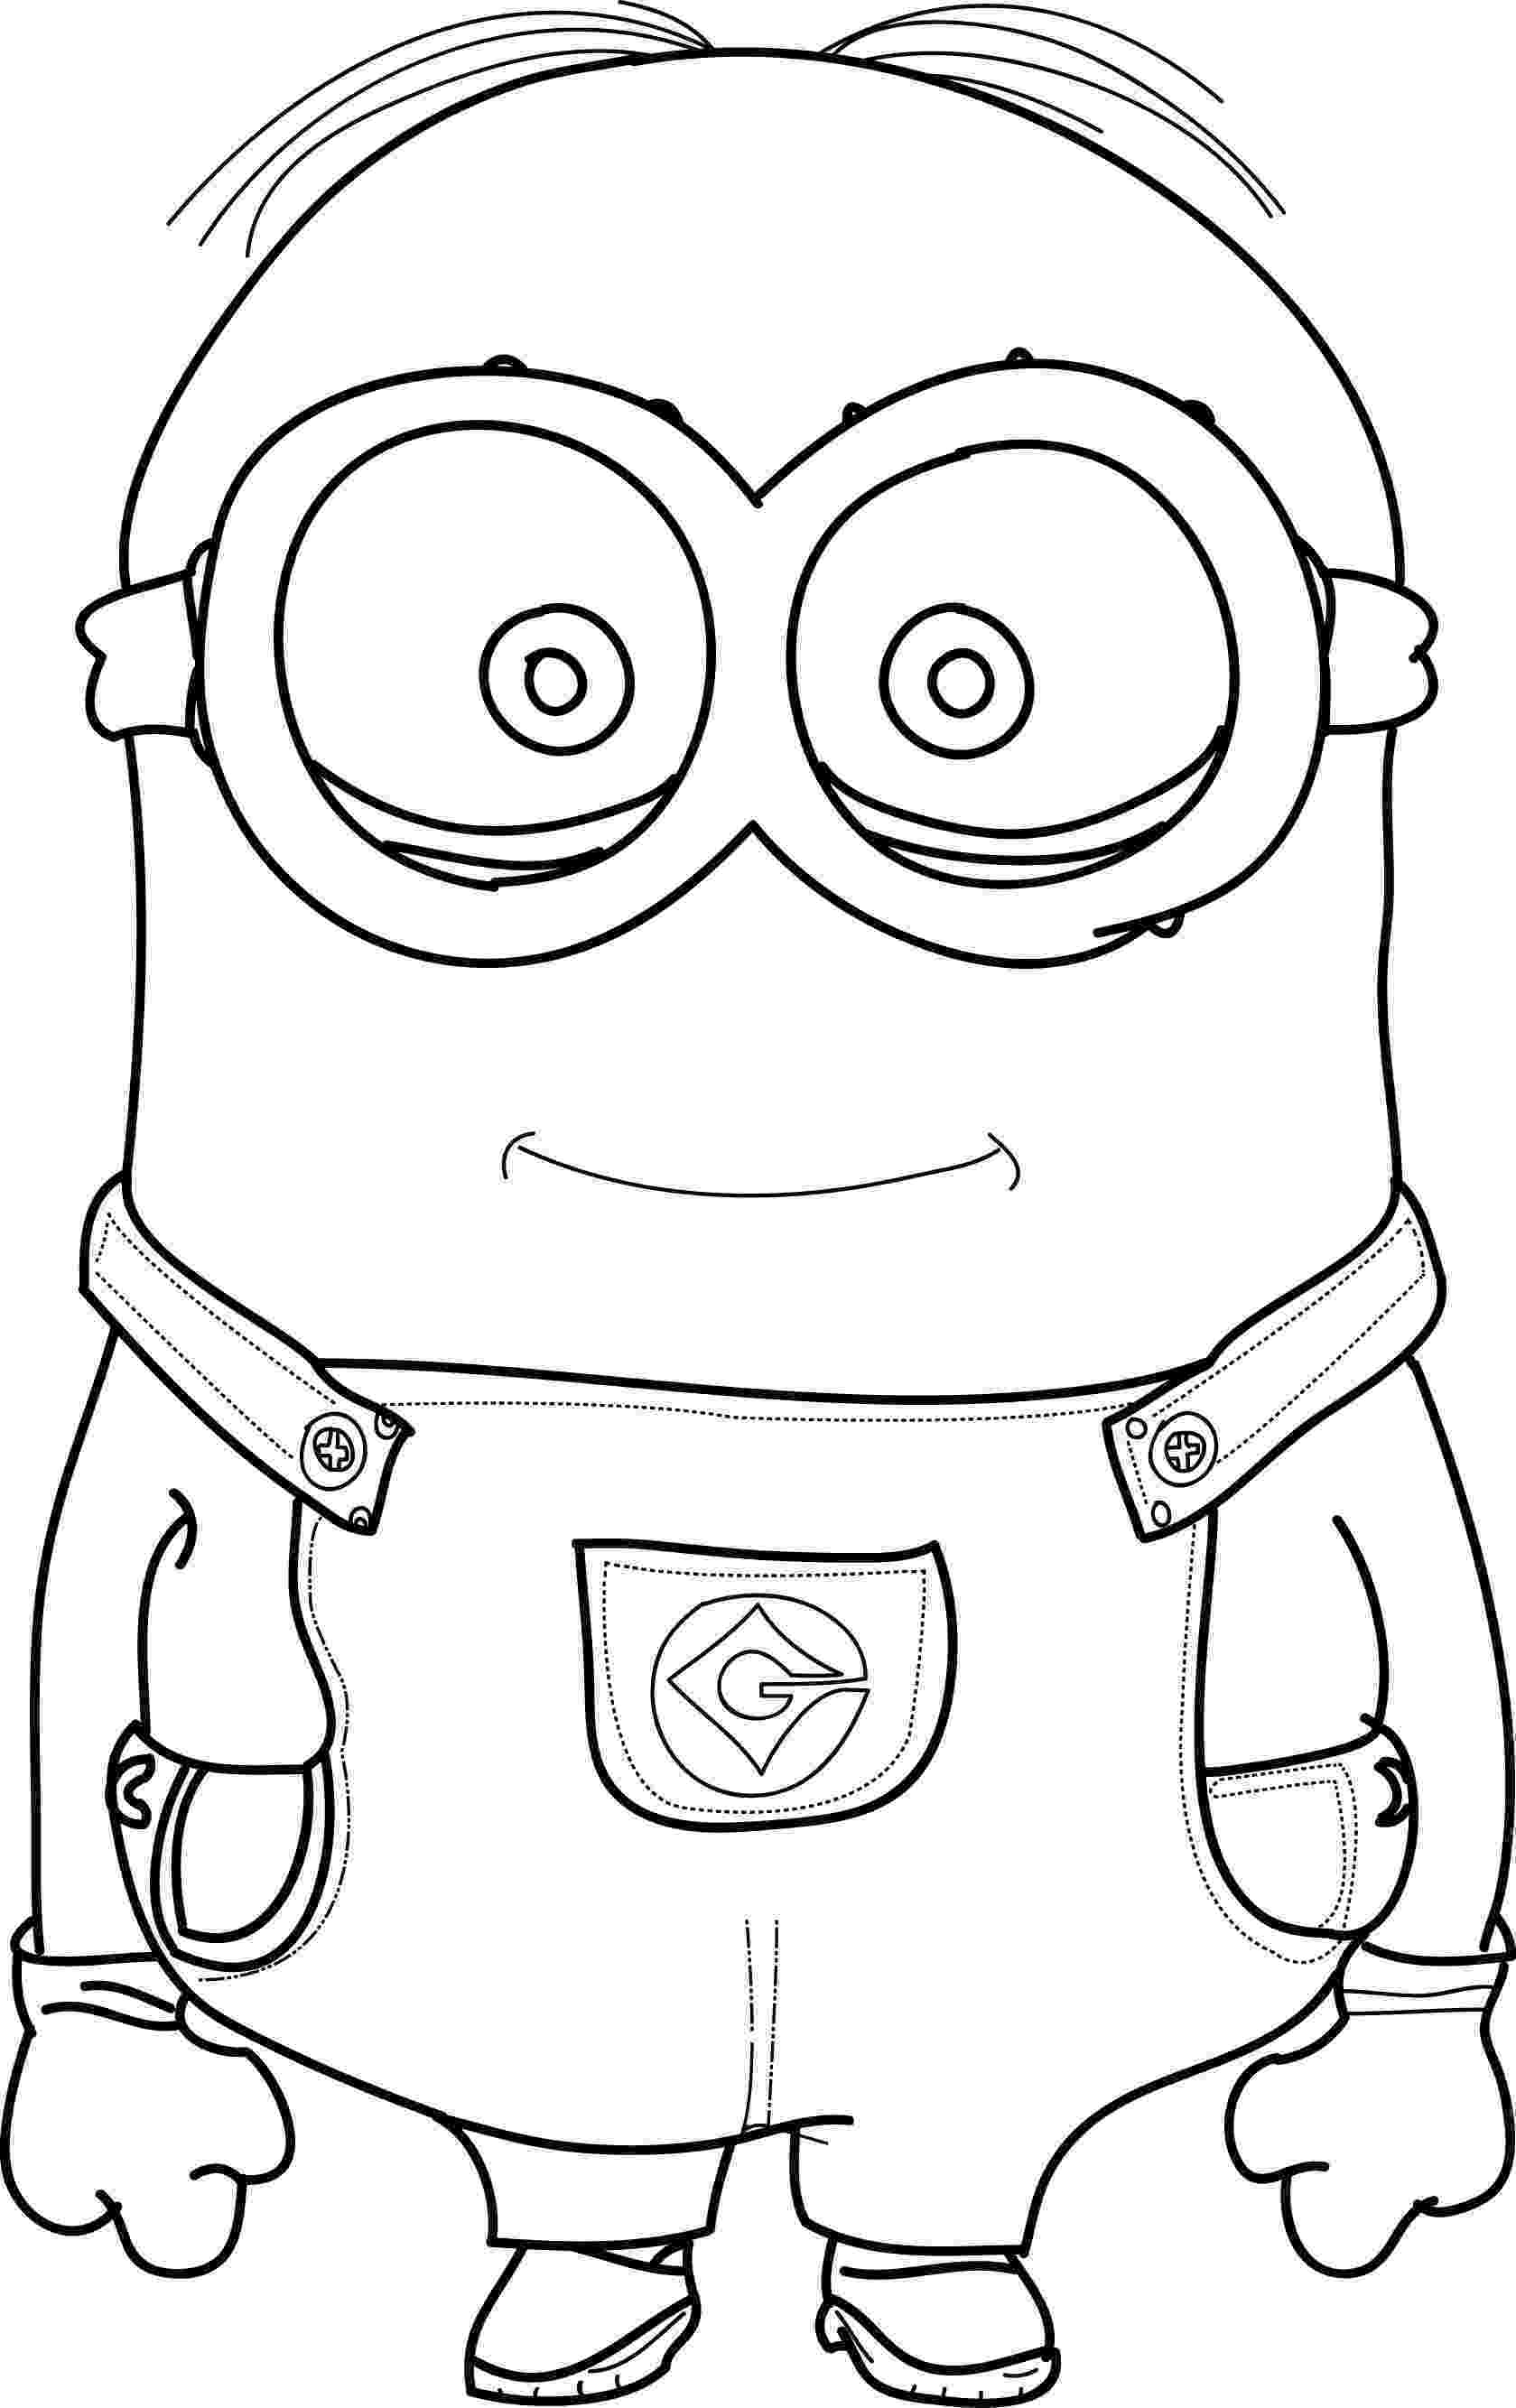 coloring pages online minions printable despicable me coloring pages for kids cool2bkids pages online minions coloring